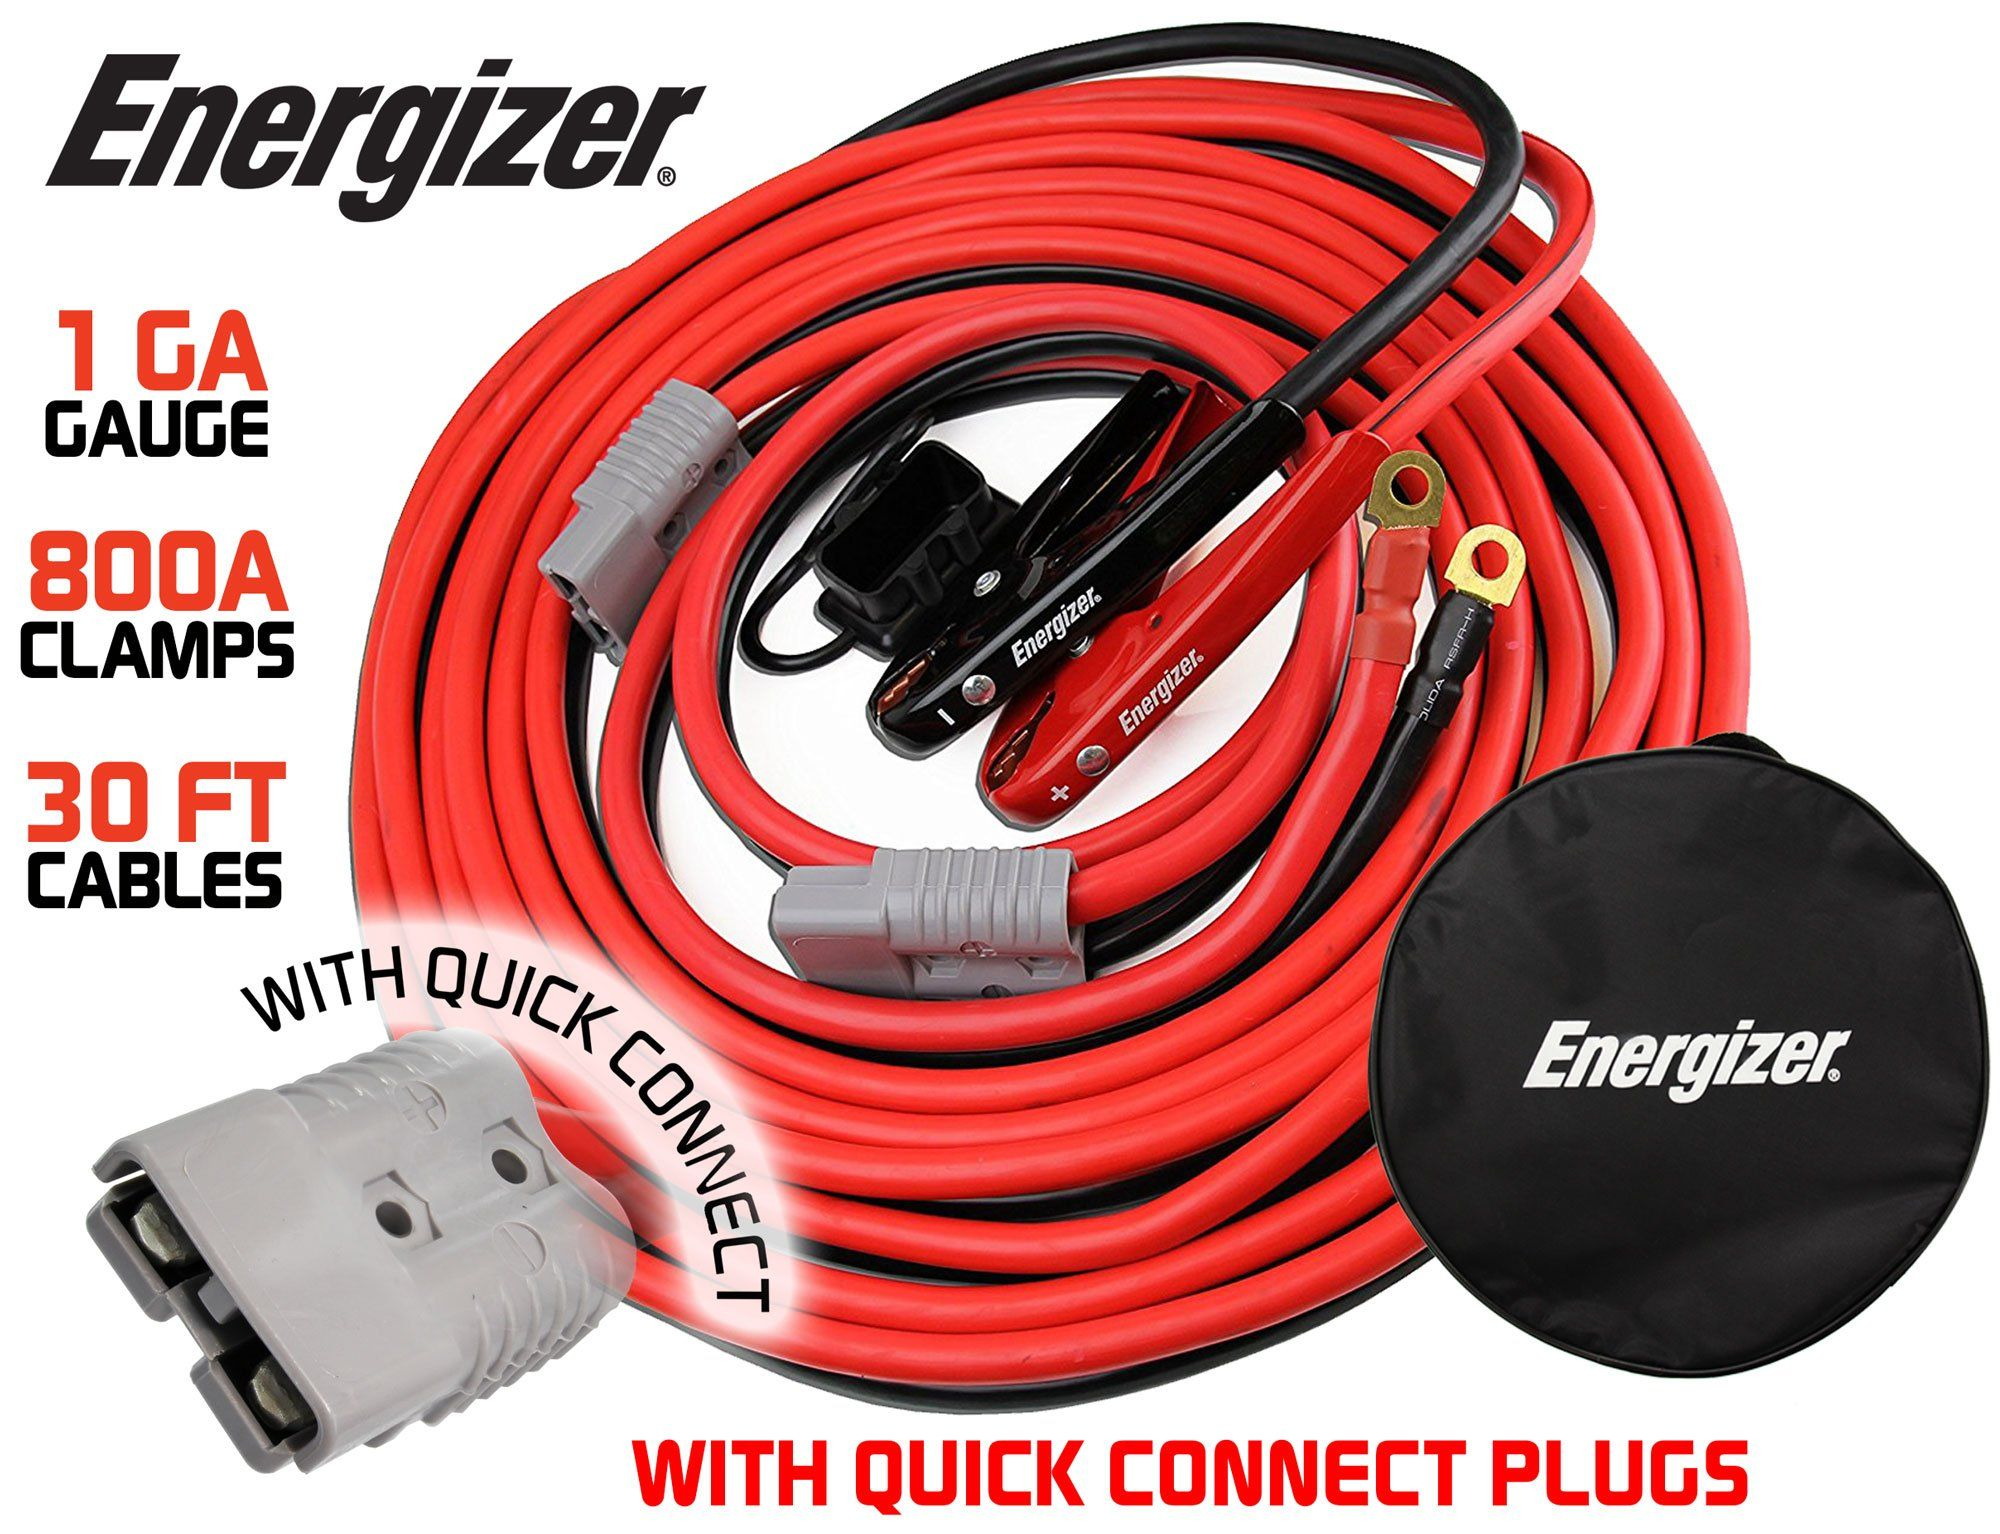 Energizer 1 Gauge 800a Permanent Installation Kit Jumper Battery Cables With Quick Connect Plug 30 Ft Booster Jump Start Enb 130 30 Al Energizer Booster Plugs